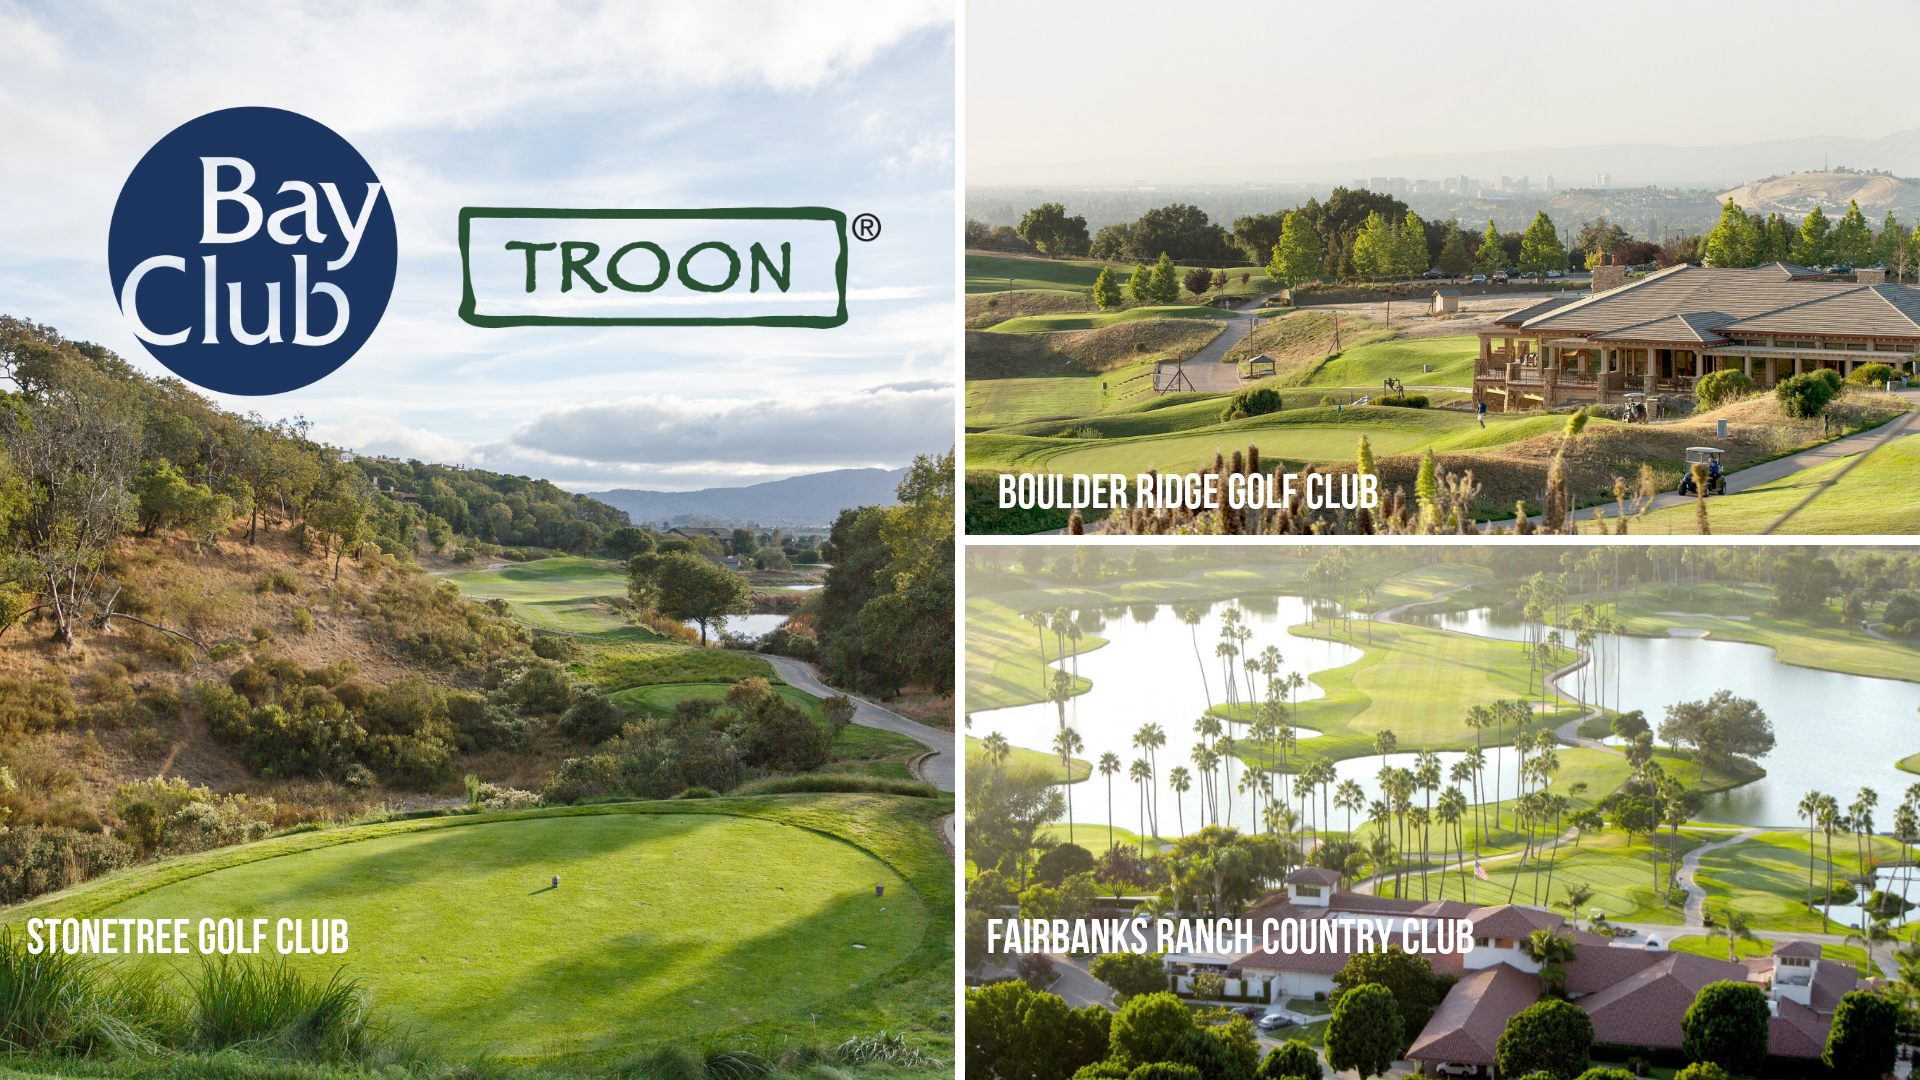 TROON SELECTED TO MANAGE THE GOLF OPERATIONS FOR THE BAY CLUB COMPANY